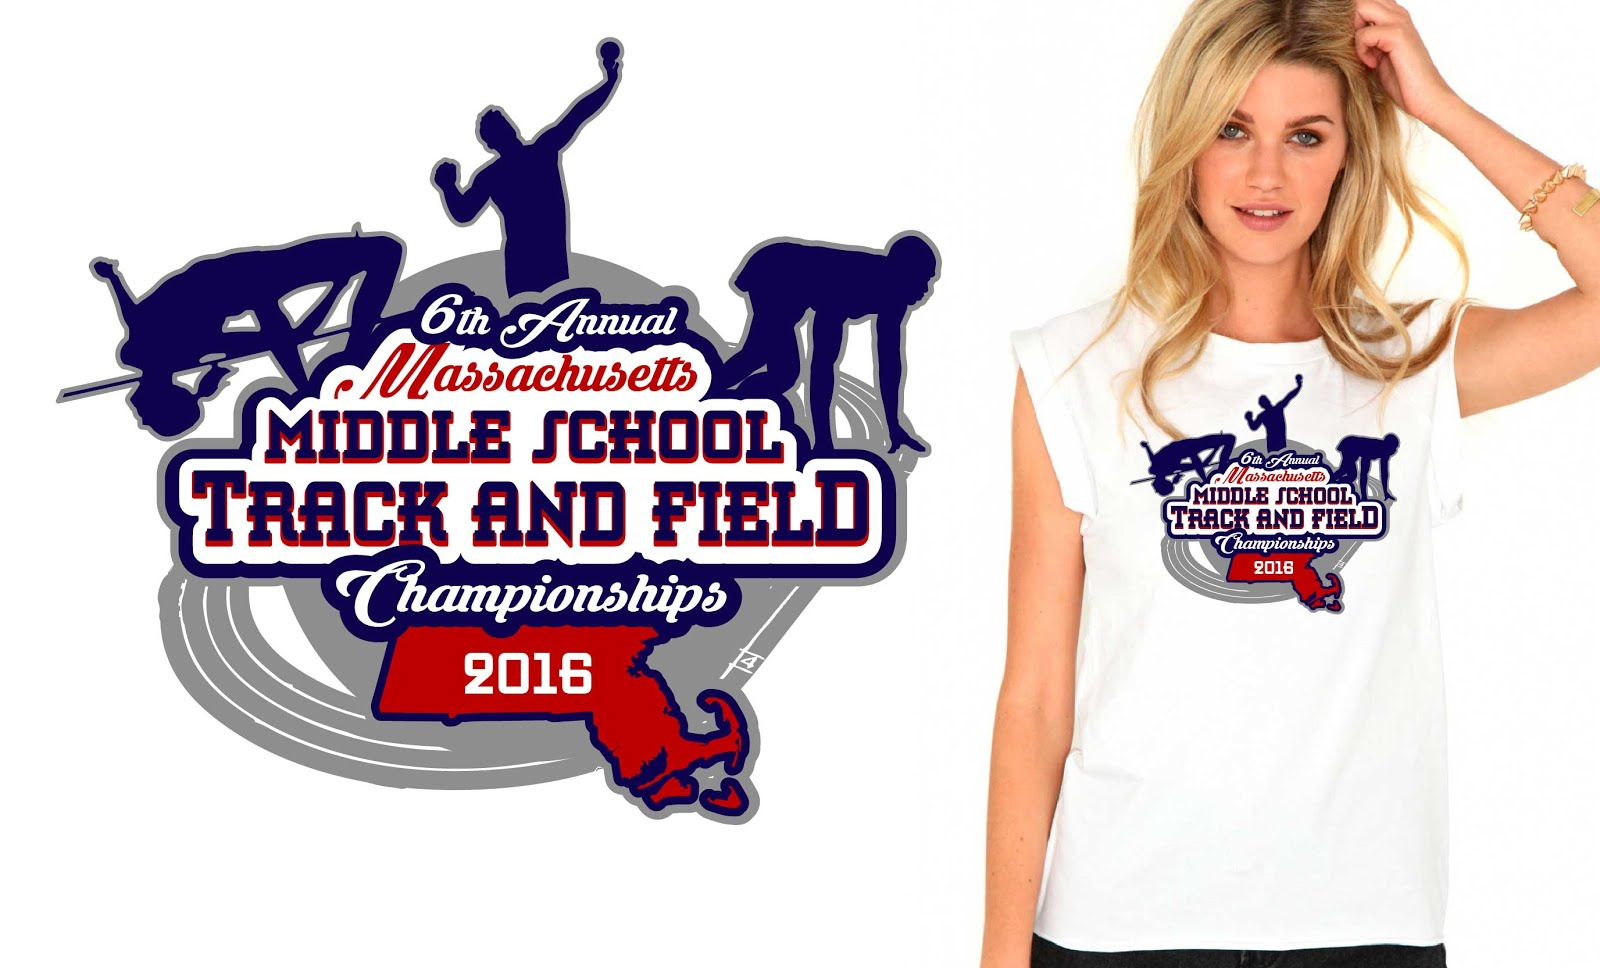 T-shirt logo design - Stunning Vector Logo Design For Tshirt For Track And Field Event